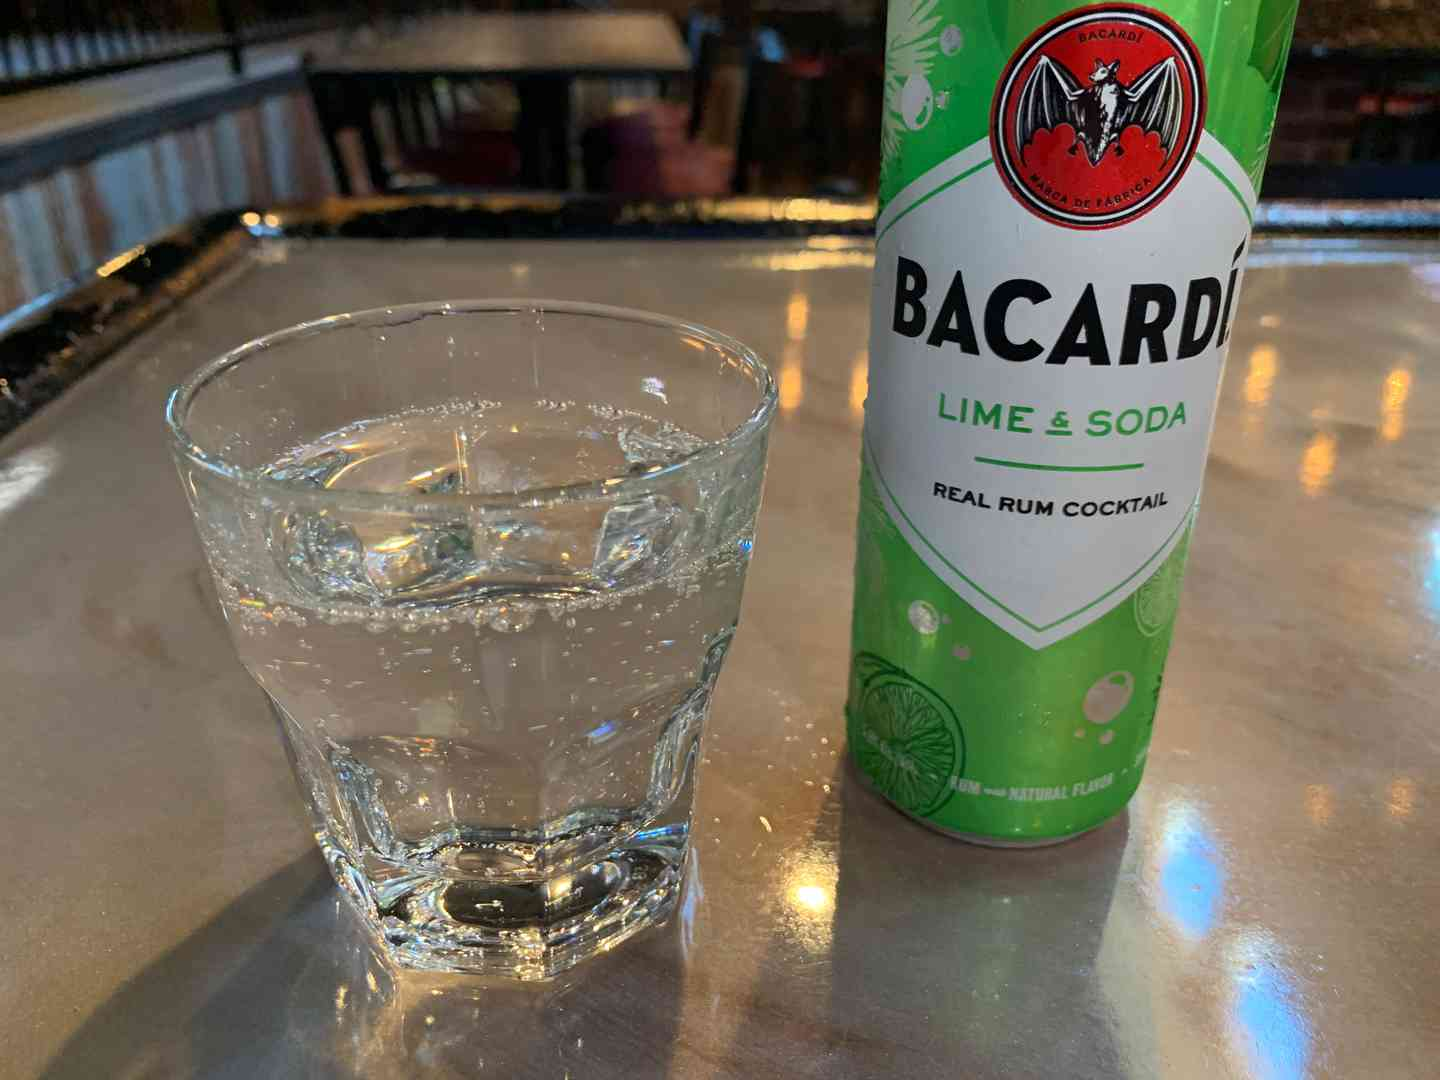 Bacardi Lime & Soda